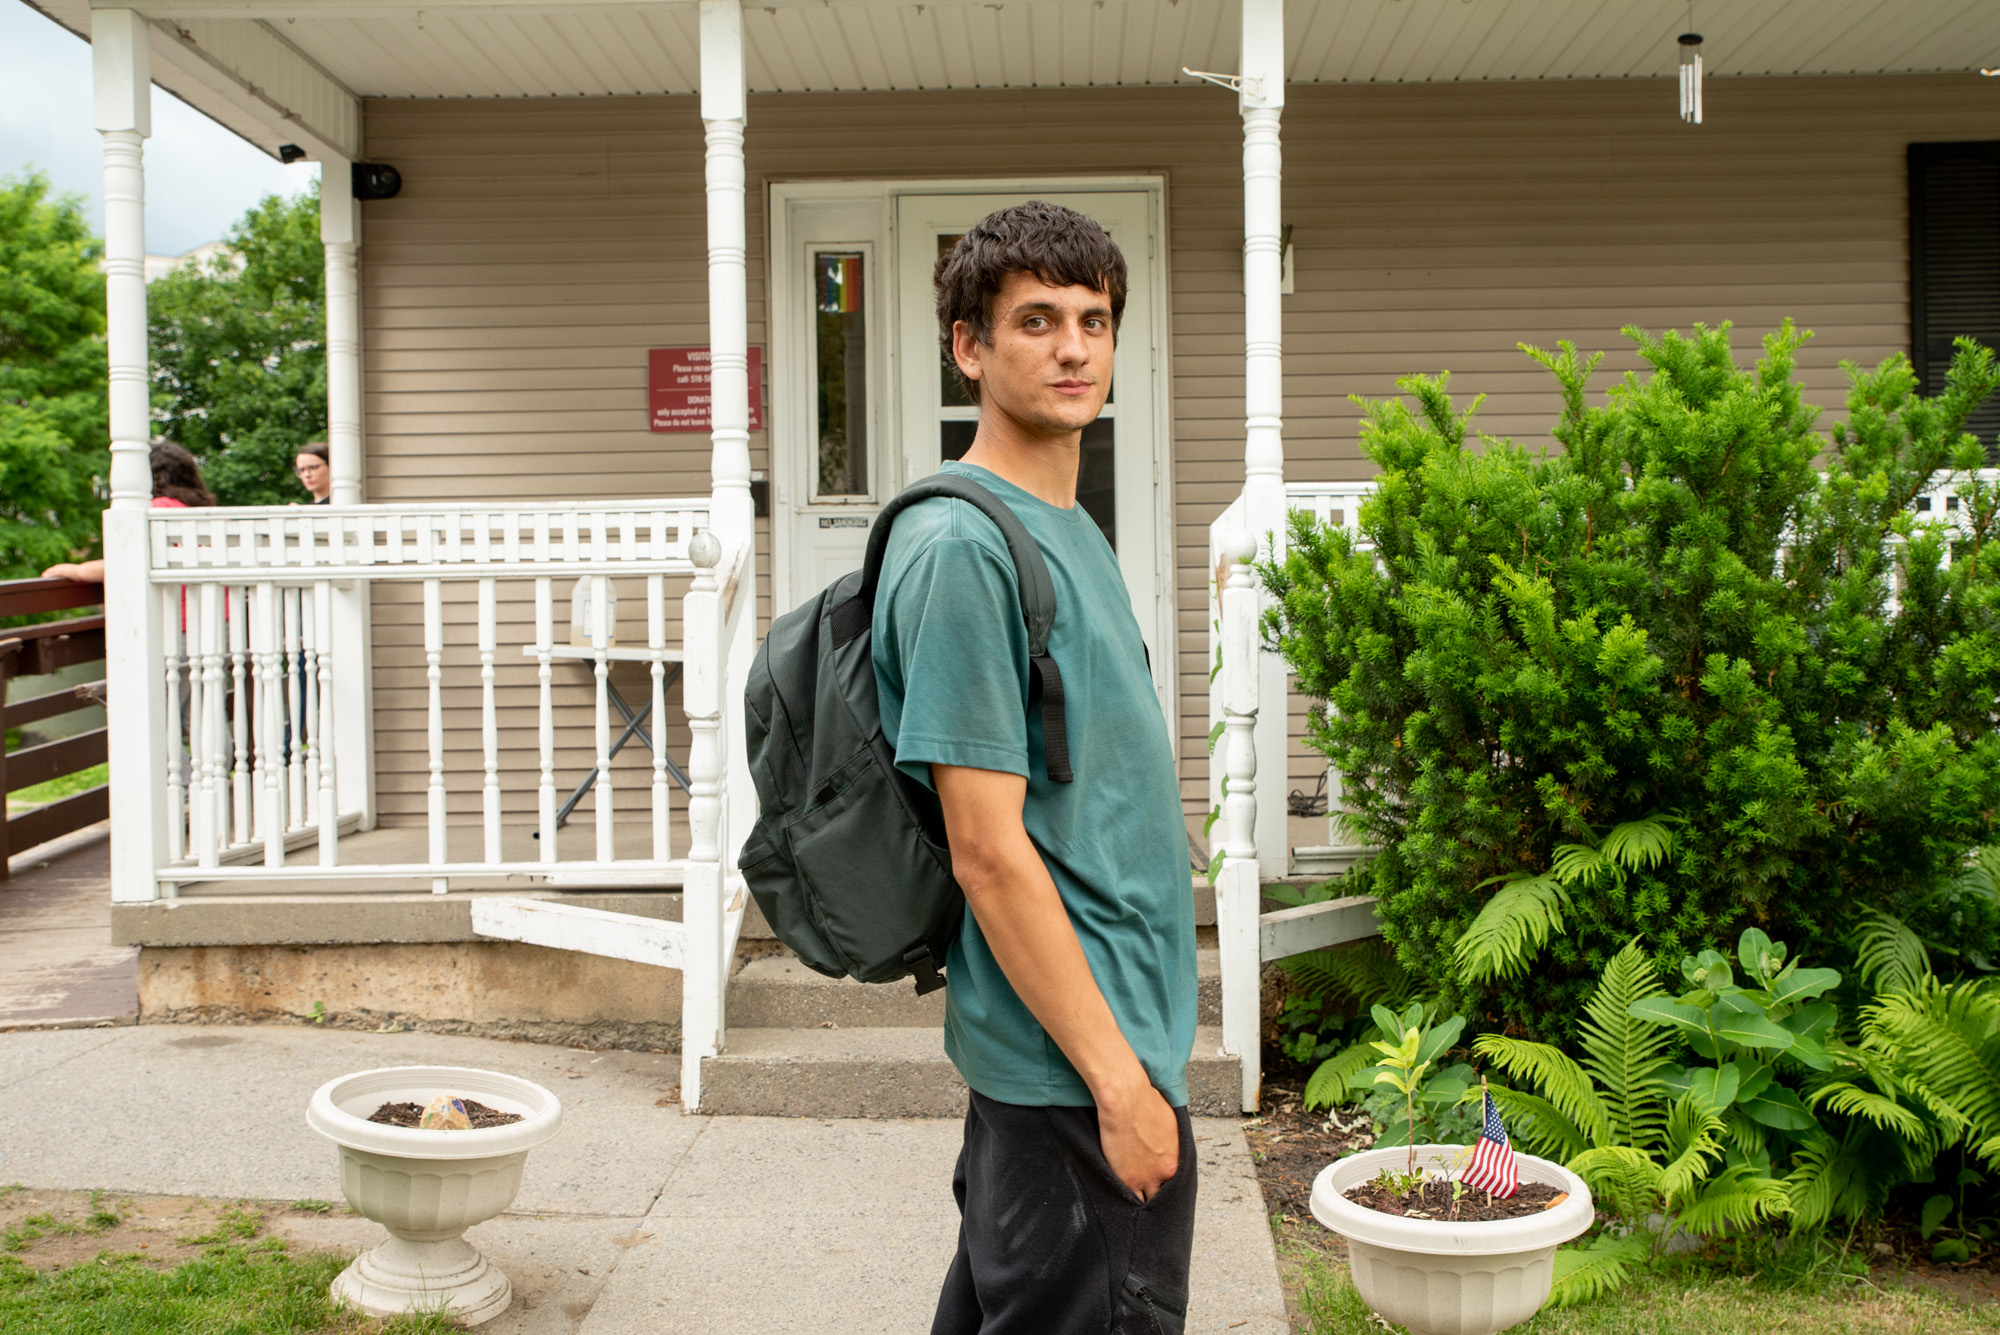 outside shelter-man with backpack